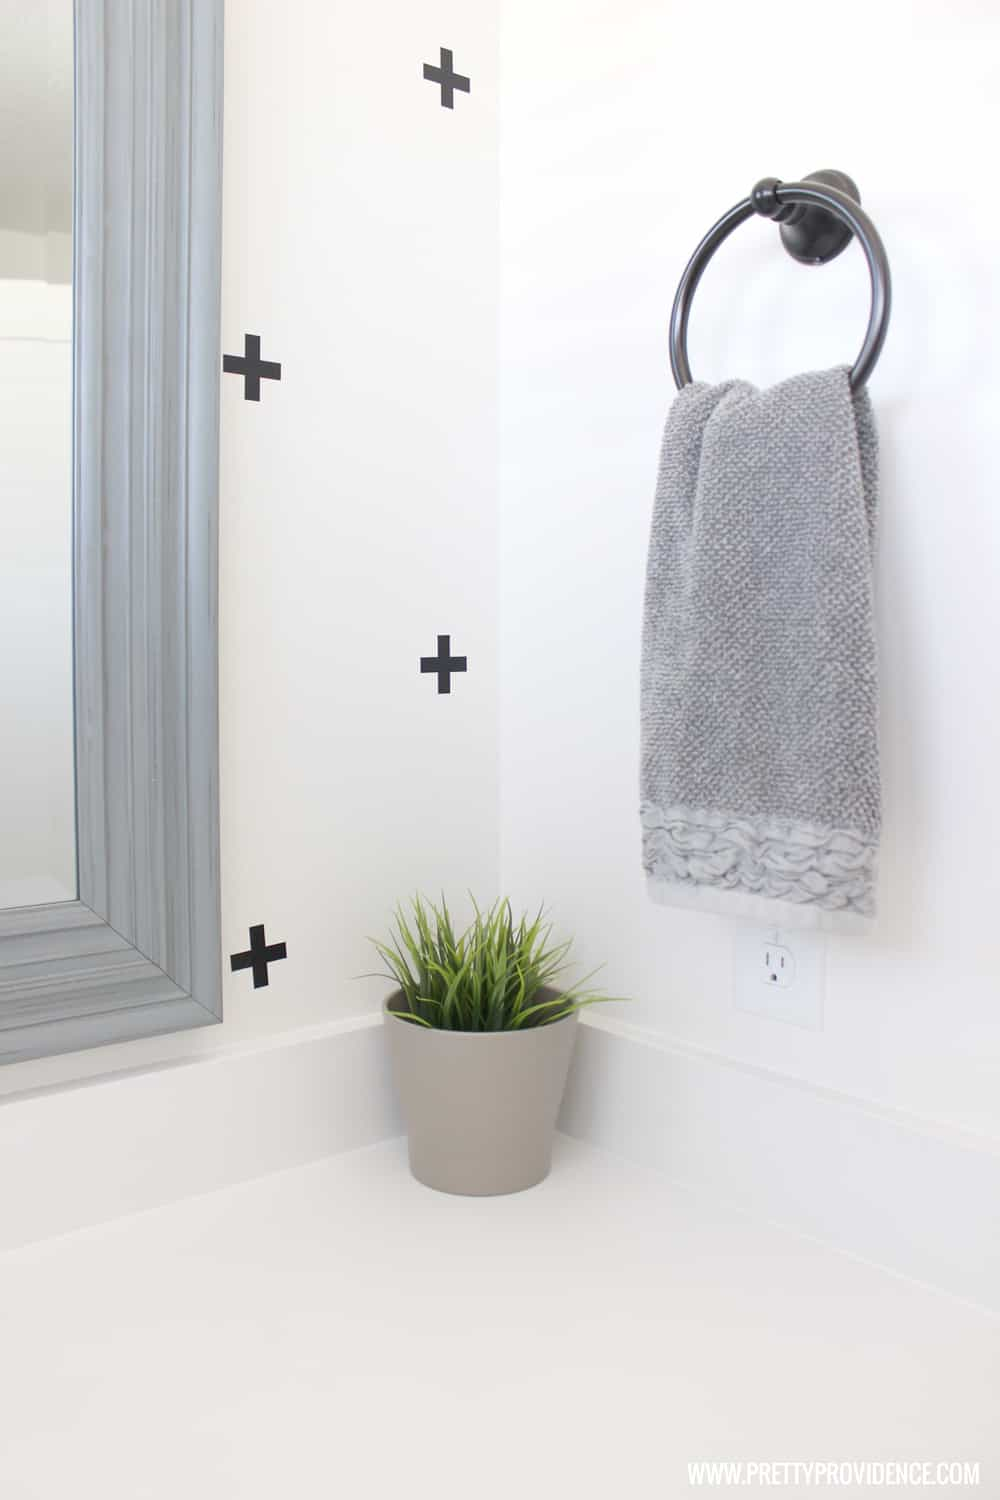 A super fun and easy boys bathroom makeover! on a budget! I can't believe how easy those wall decals were to apply!